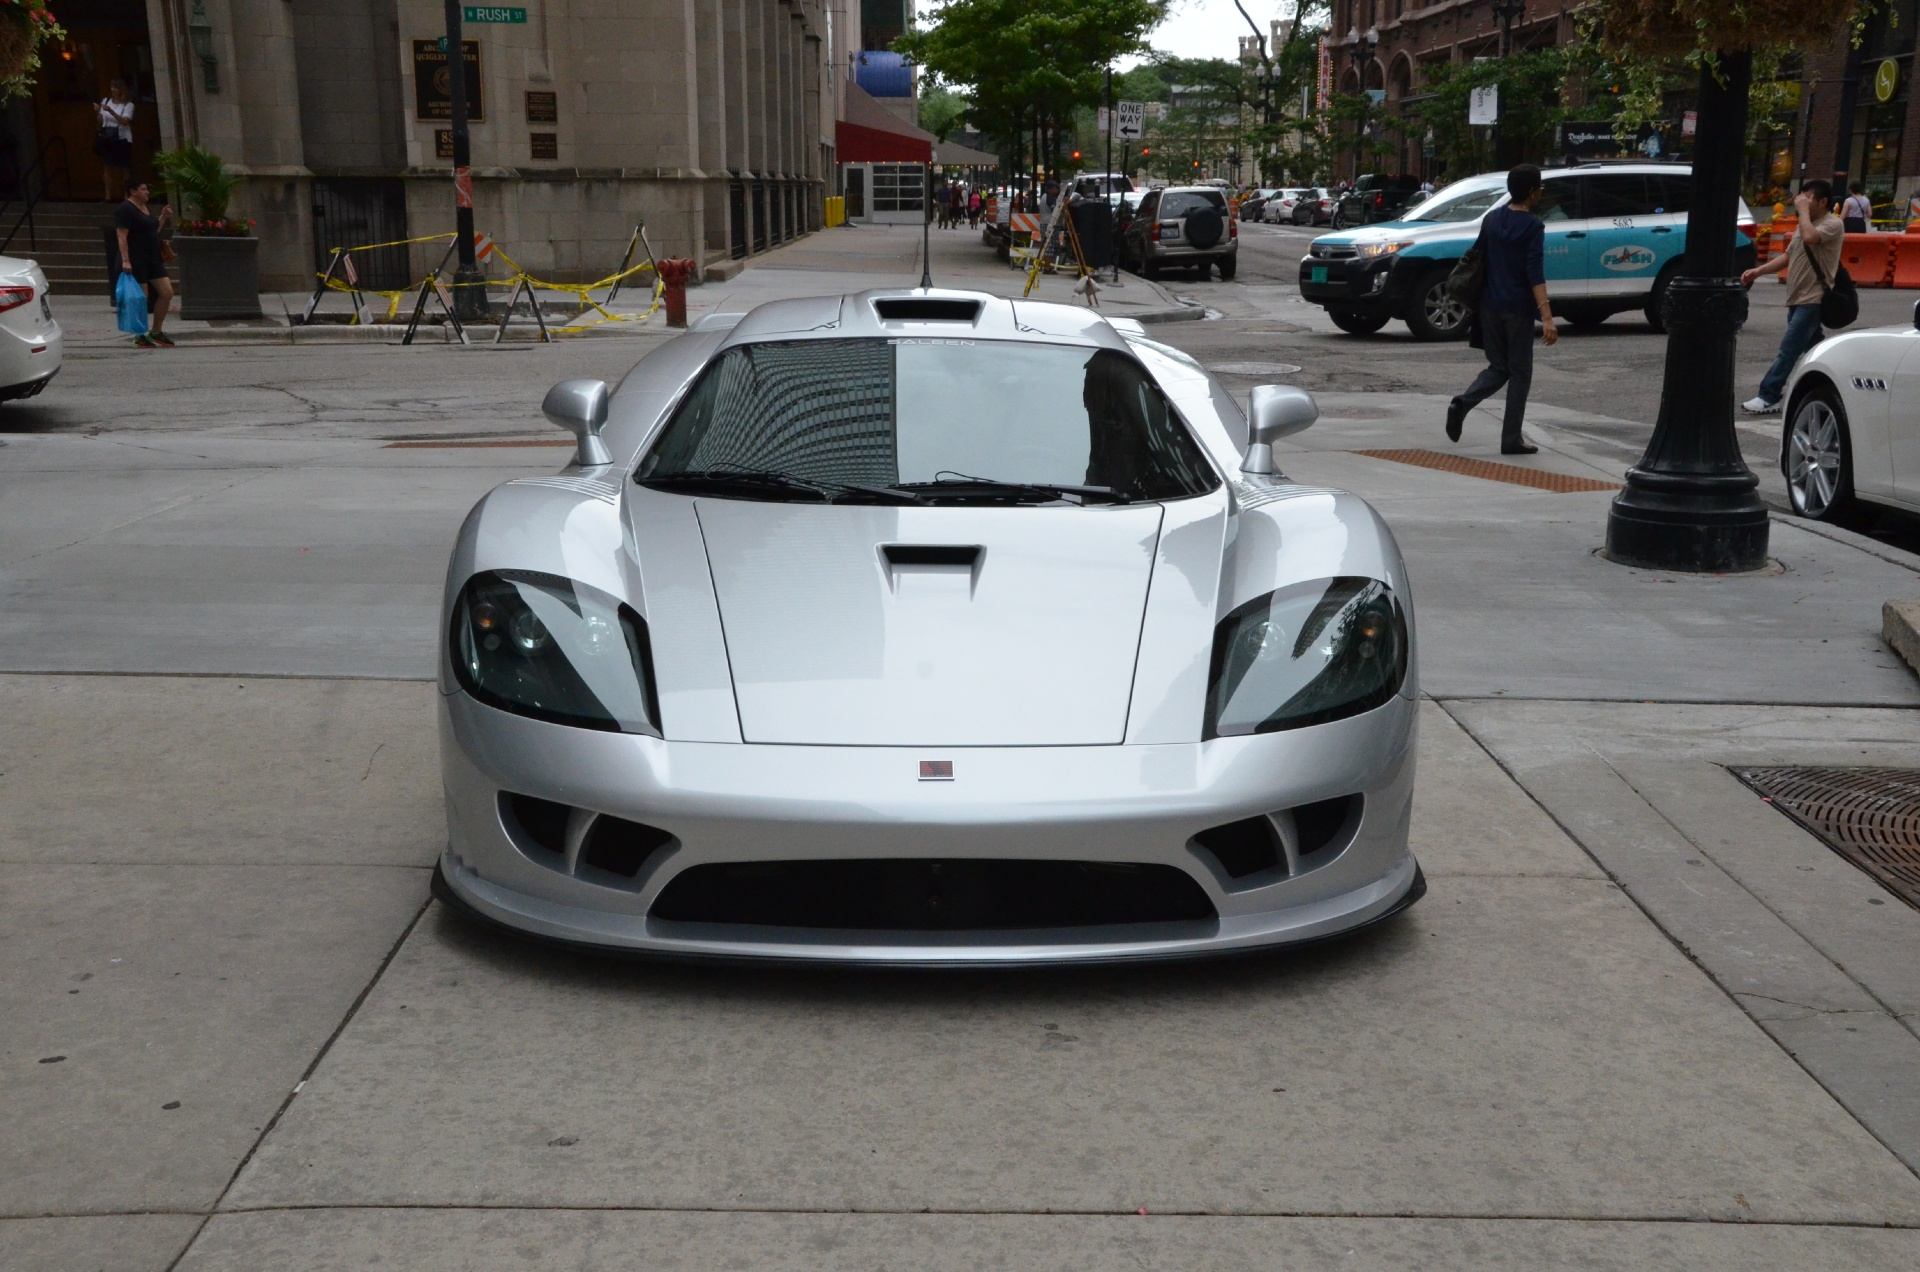 Saleen S7 For Sale >> 2004 Saleen S7 Stock # GC1707 for sale near Chicago, IL ...